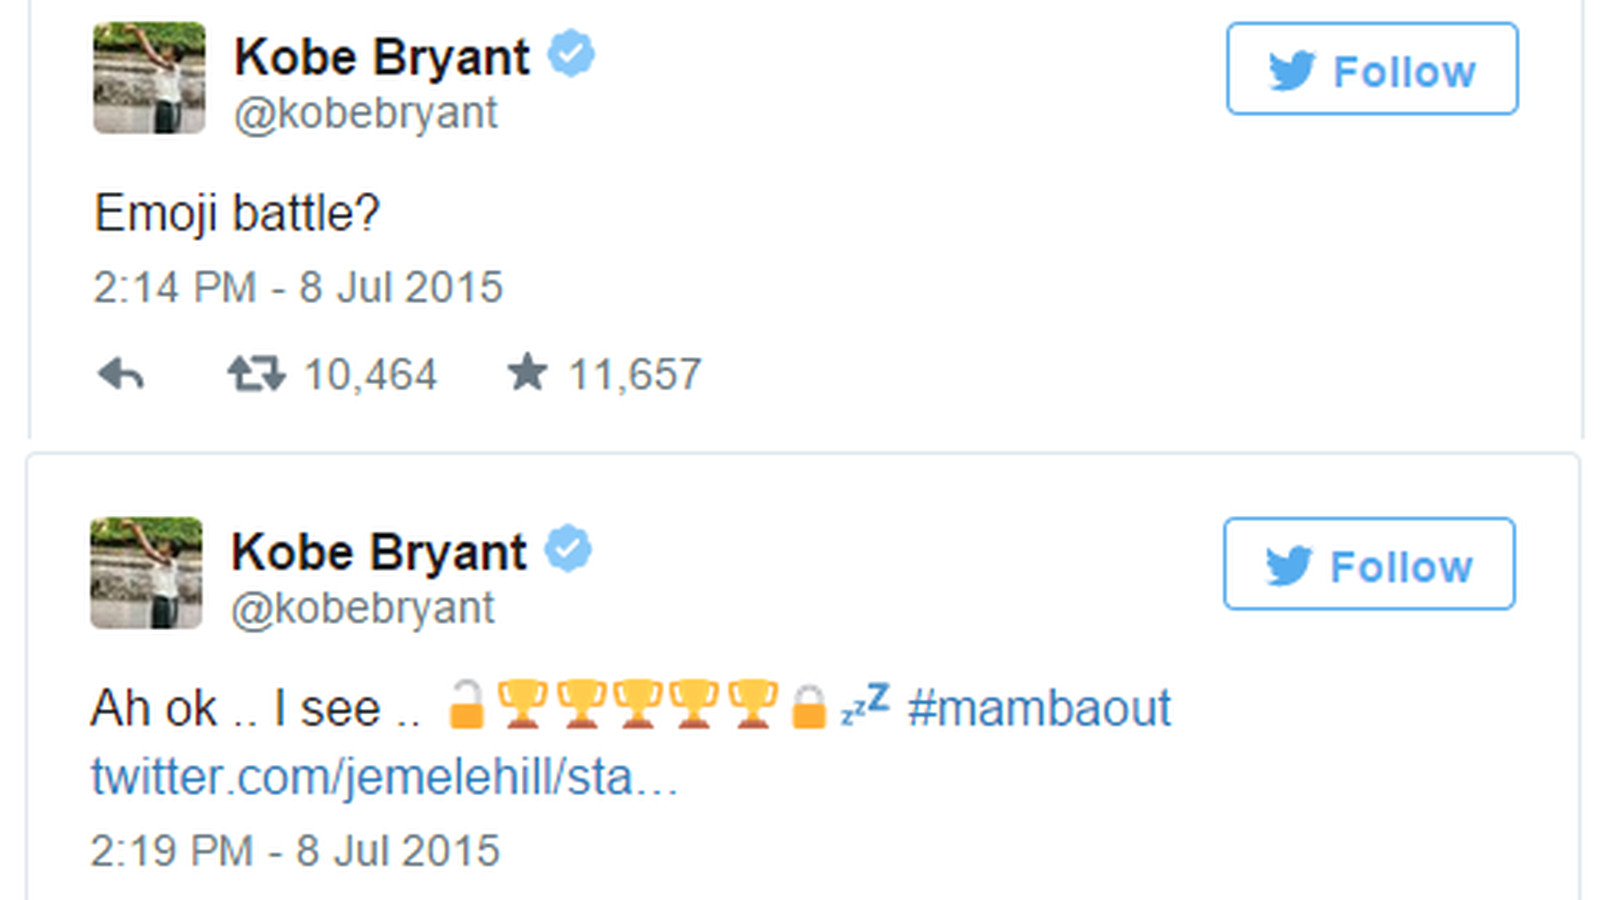 Kobe Bryant Joined The Nba Emoji Craze In The Most Kobe Bryant Way